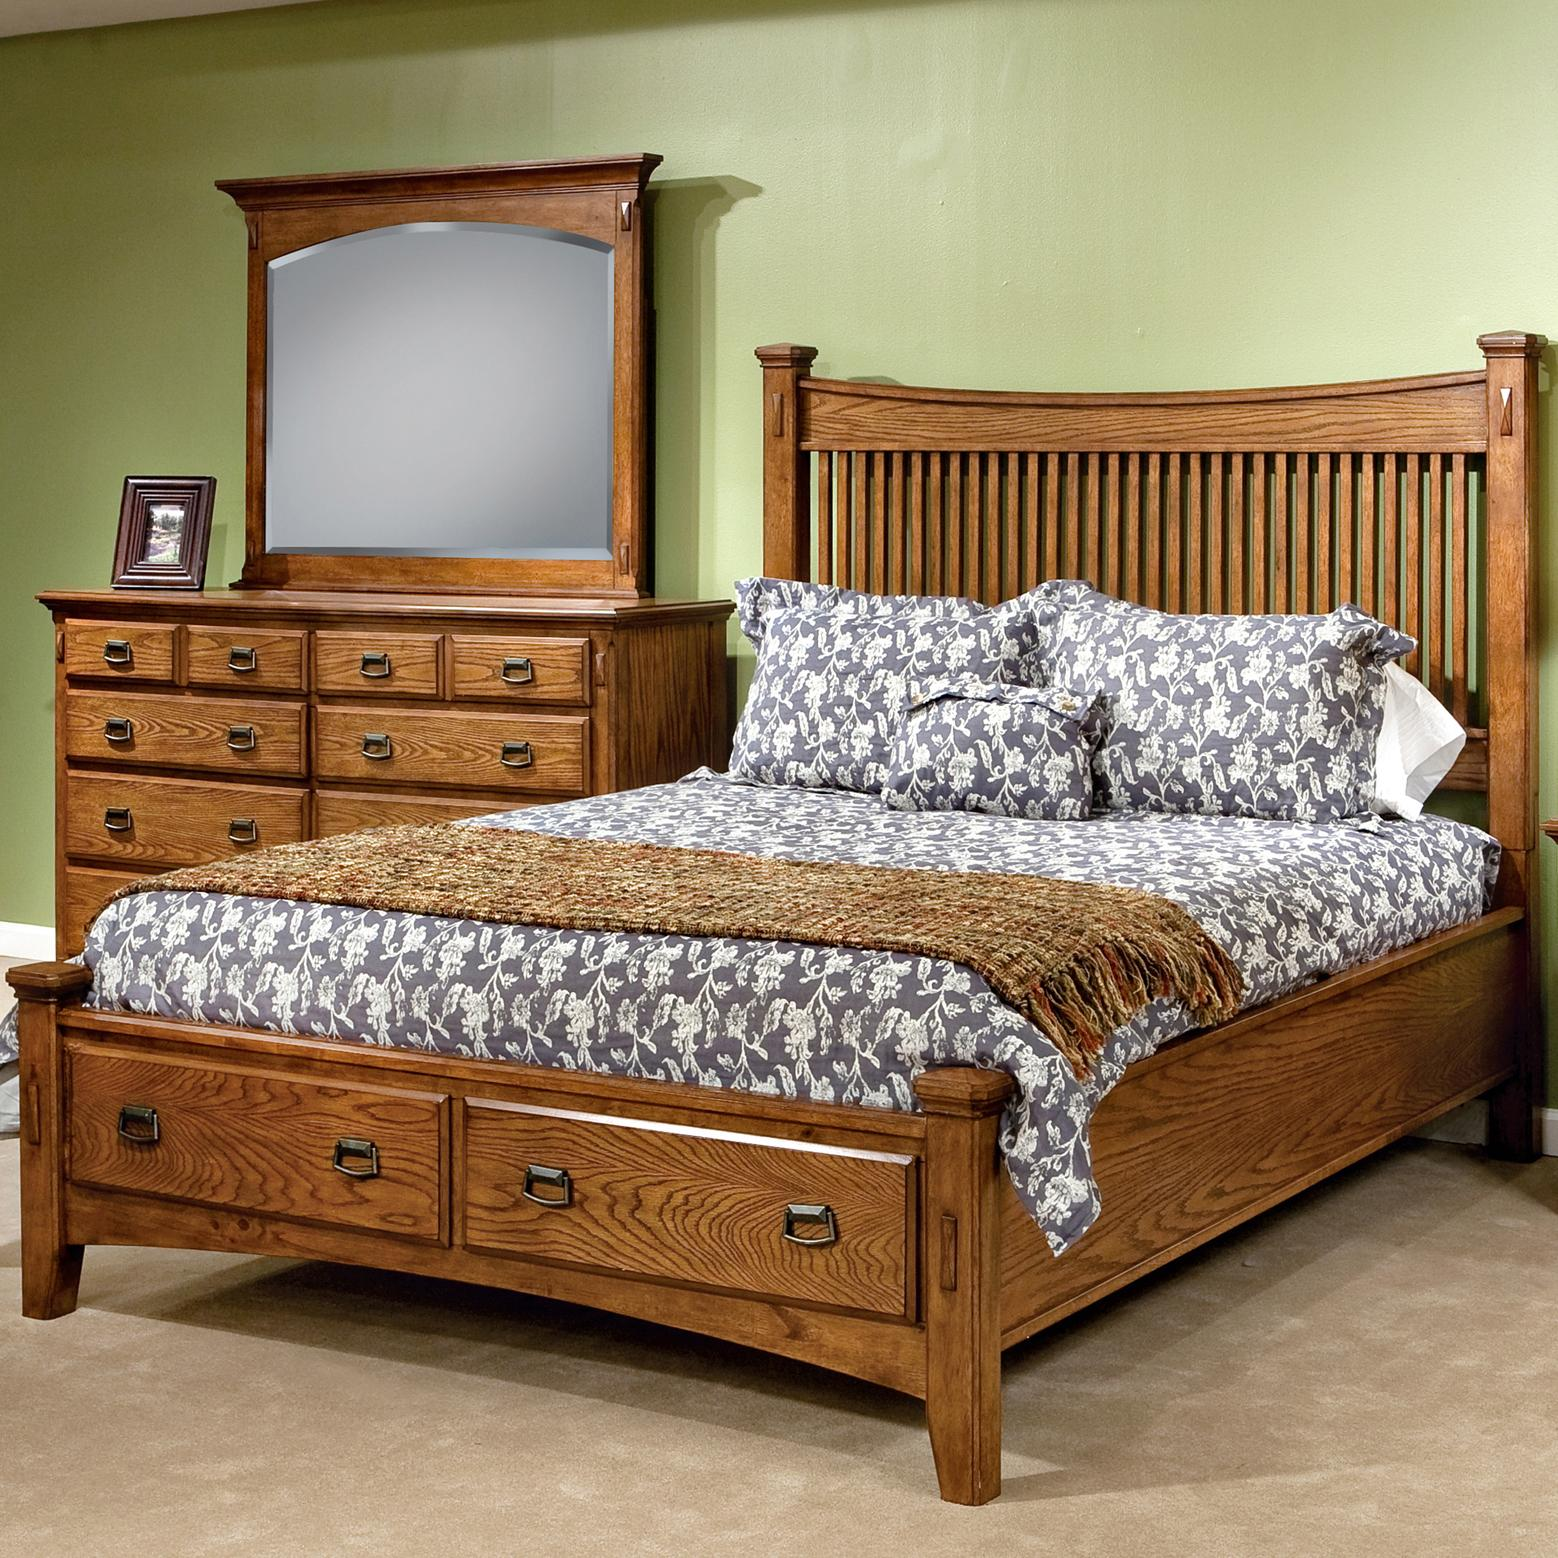 Intercon Pasadena Revival  Queen Storage Bed - Item Number: PR-BR-5450QS-MBN-FB+RS+5450Q-MBN-HB